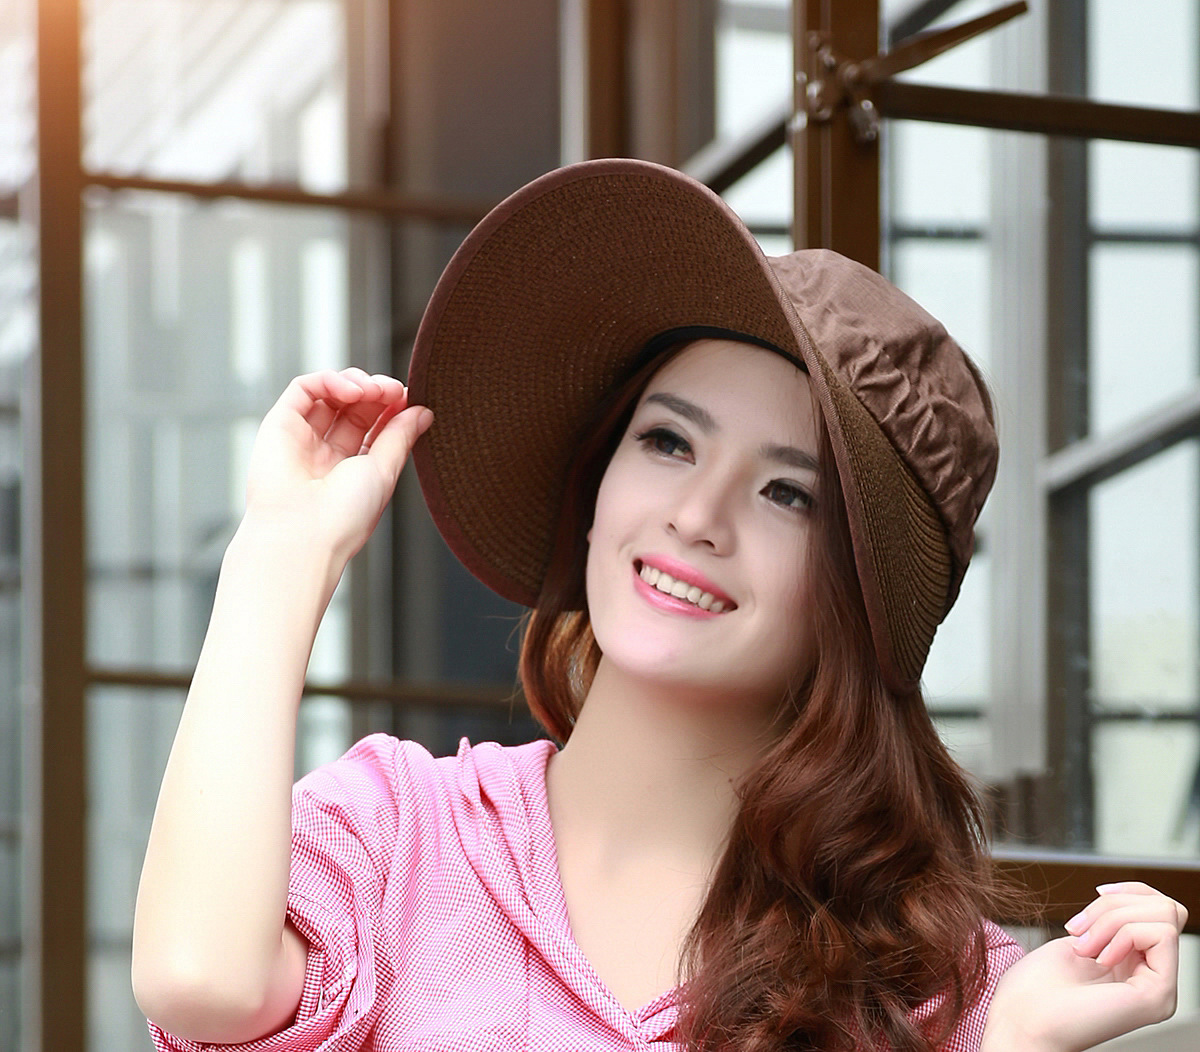 273dfca73d7 2015 New fashion women summer sun cap cloth hat straw hat visor ...